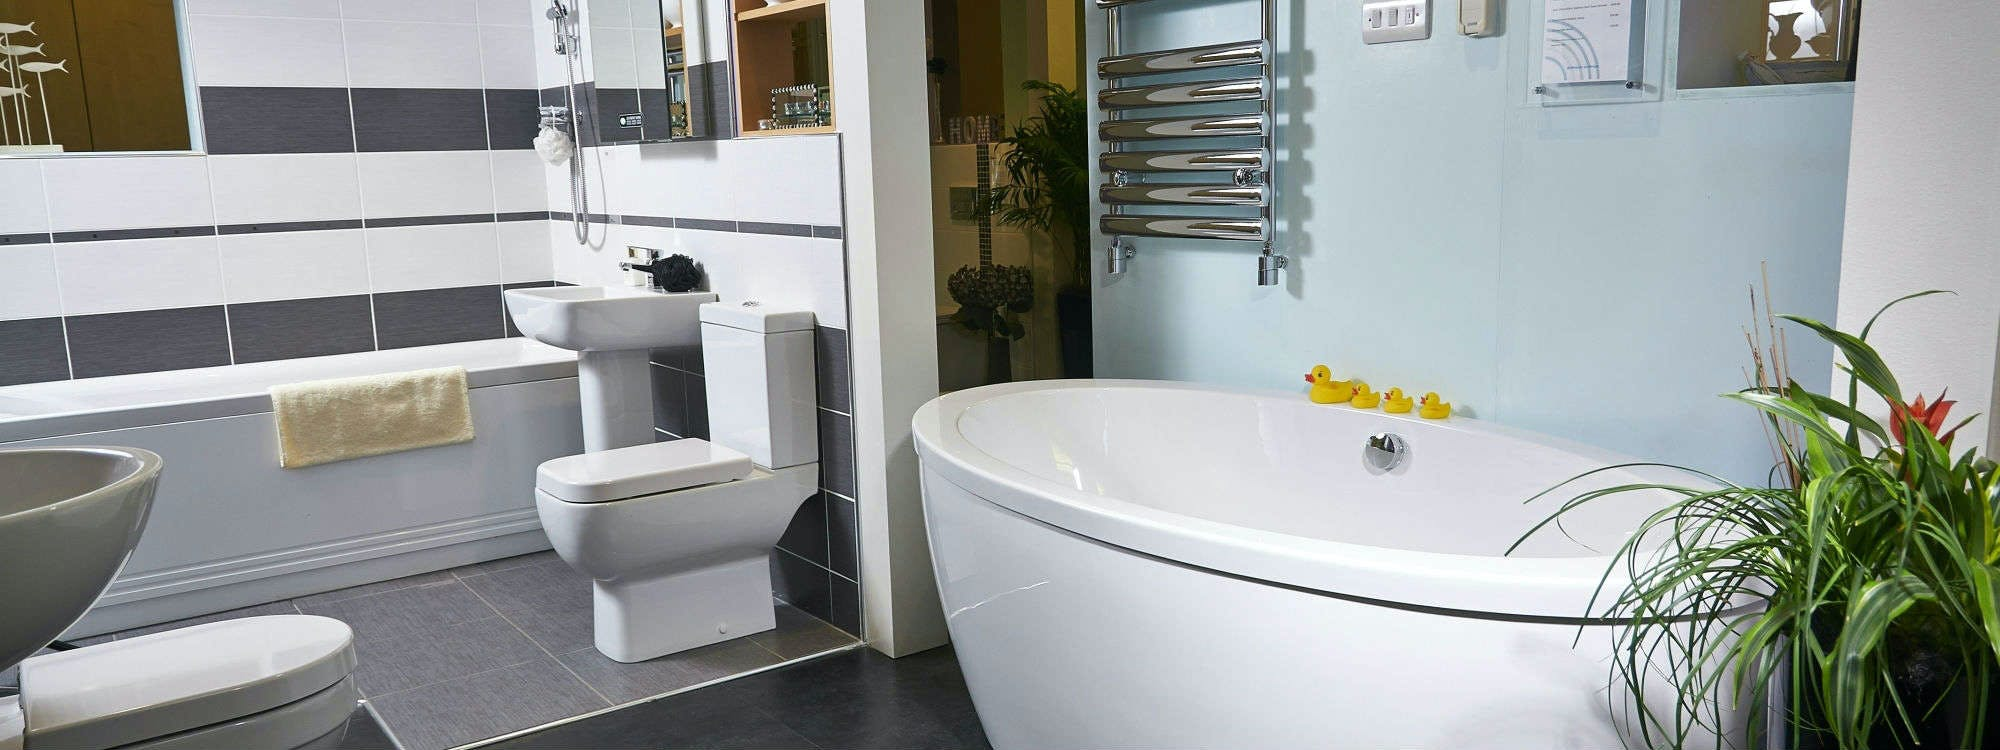 More Bathrooms - Bathroom Showroom Leeds